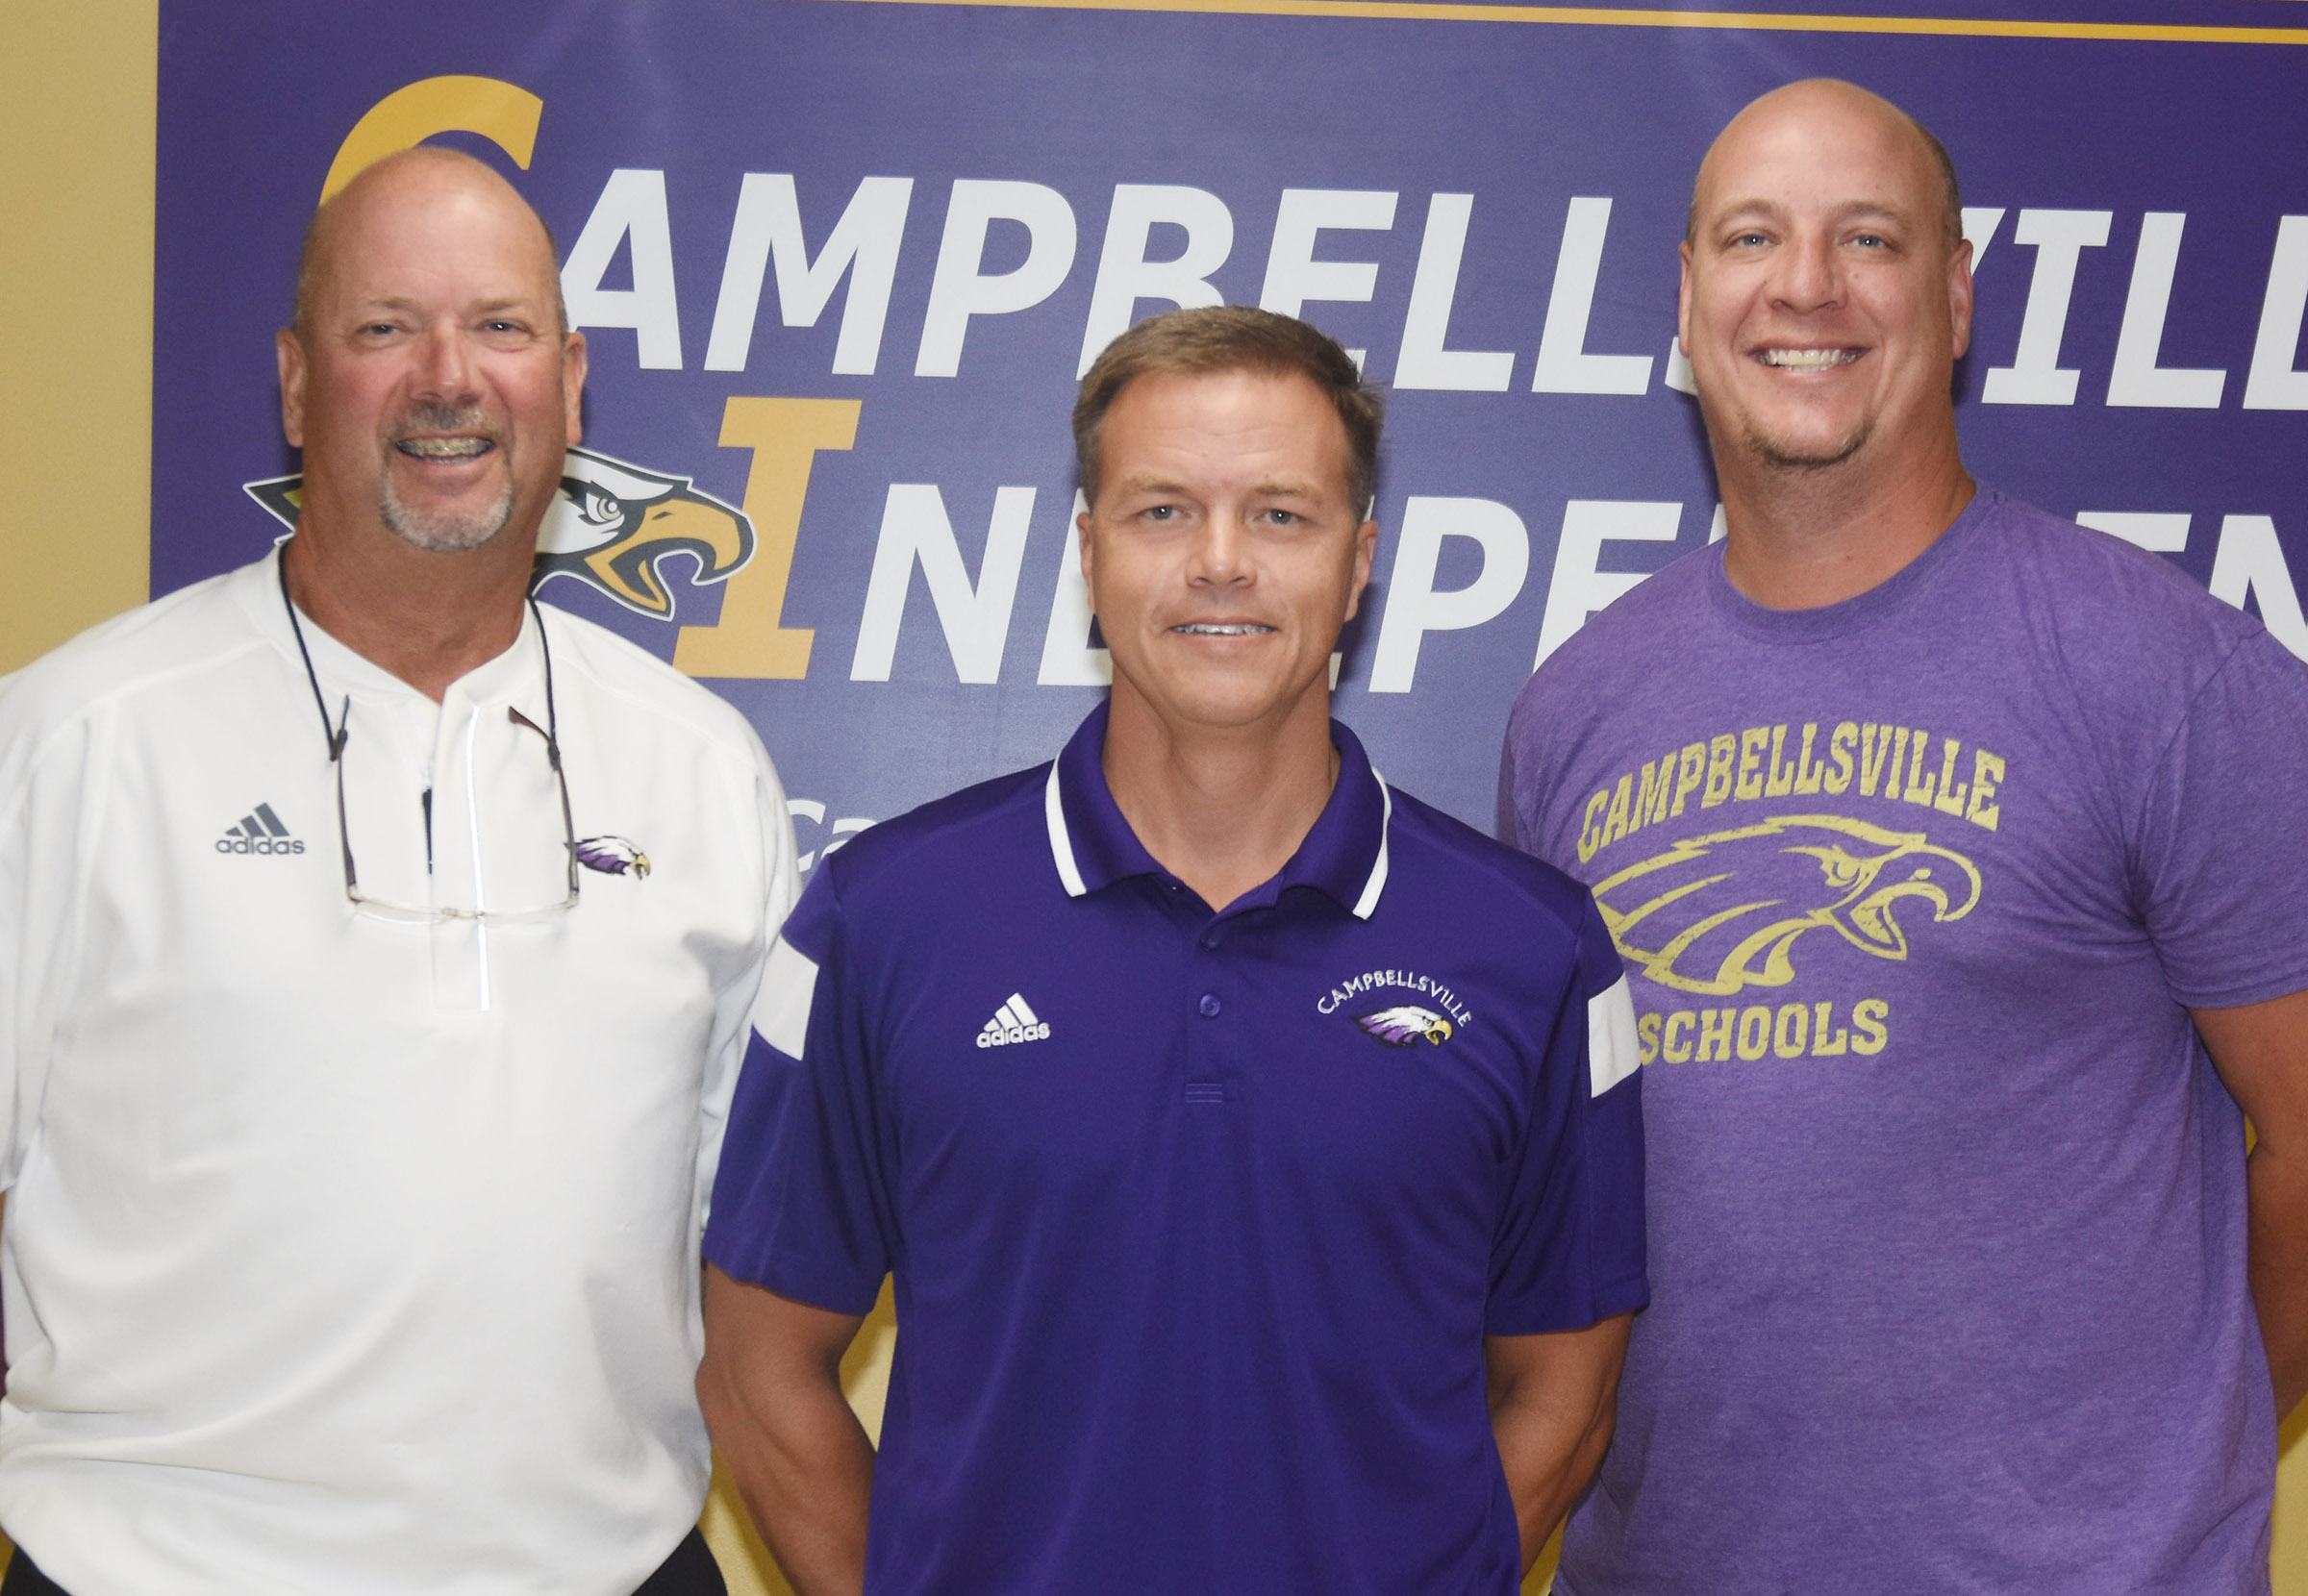 Chris Kidwell, who serves as associate superintendent and finance director at Campbellsville Independent Schools, will lead the Campbellsville High School archery team. Pictured with him are CHS Athletic Director Tim Davis, at left, and CHS Principal David Petett.